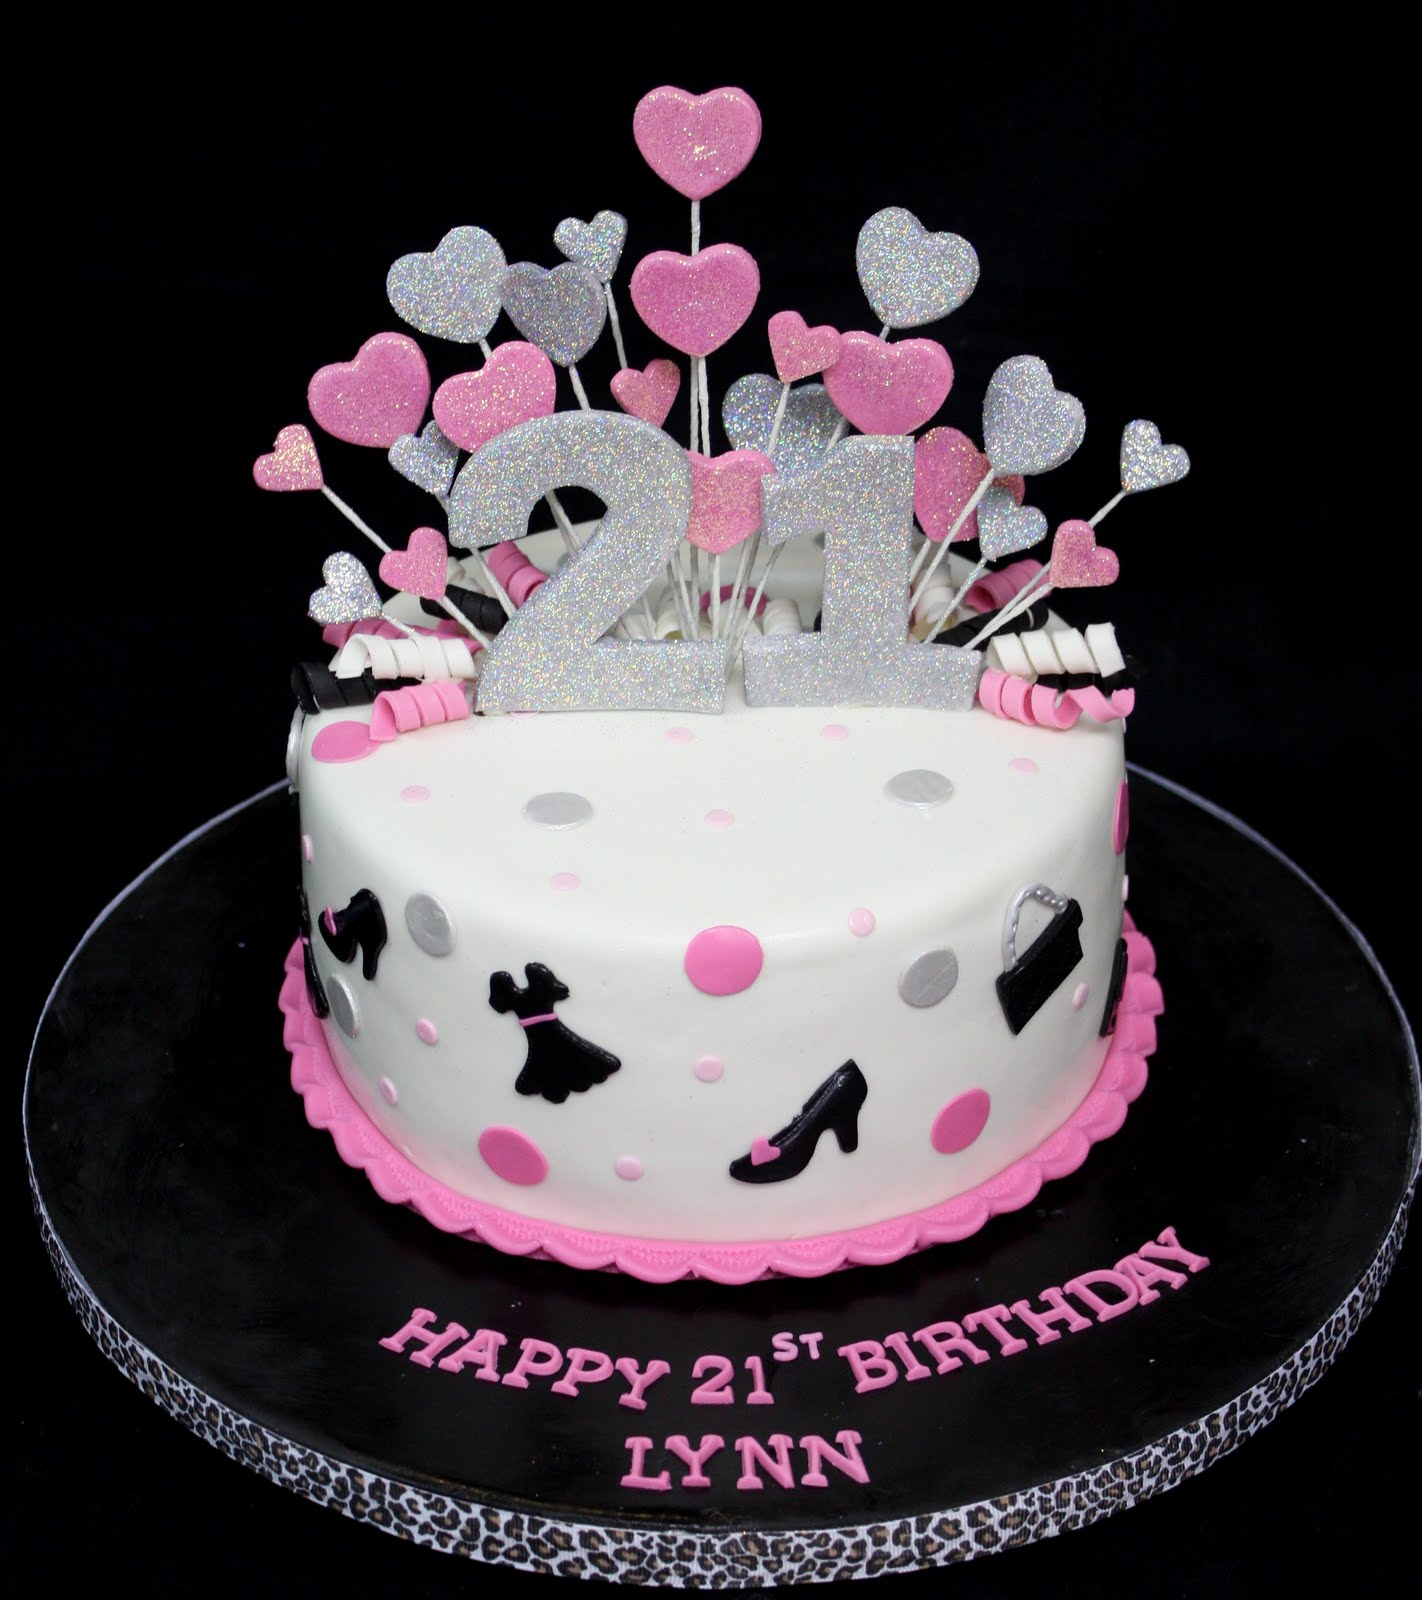 21st birthday cakes decoration ideas little birthday cakes for 21st bday decoration ideas